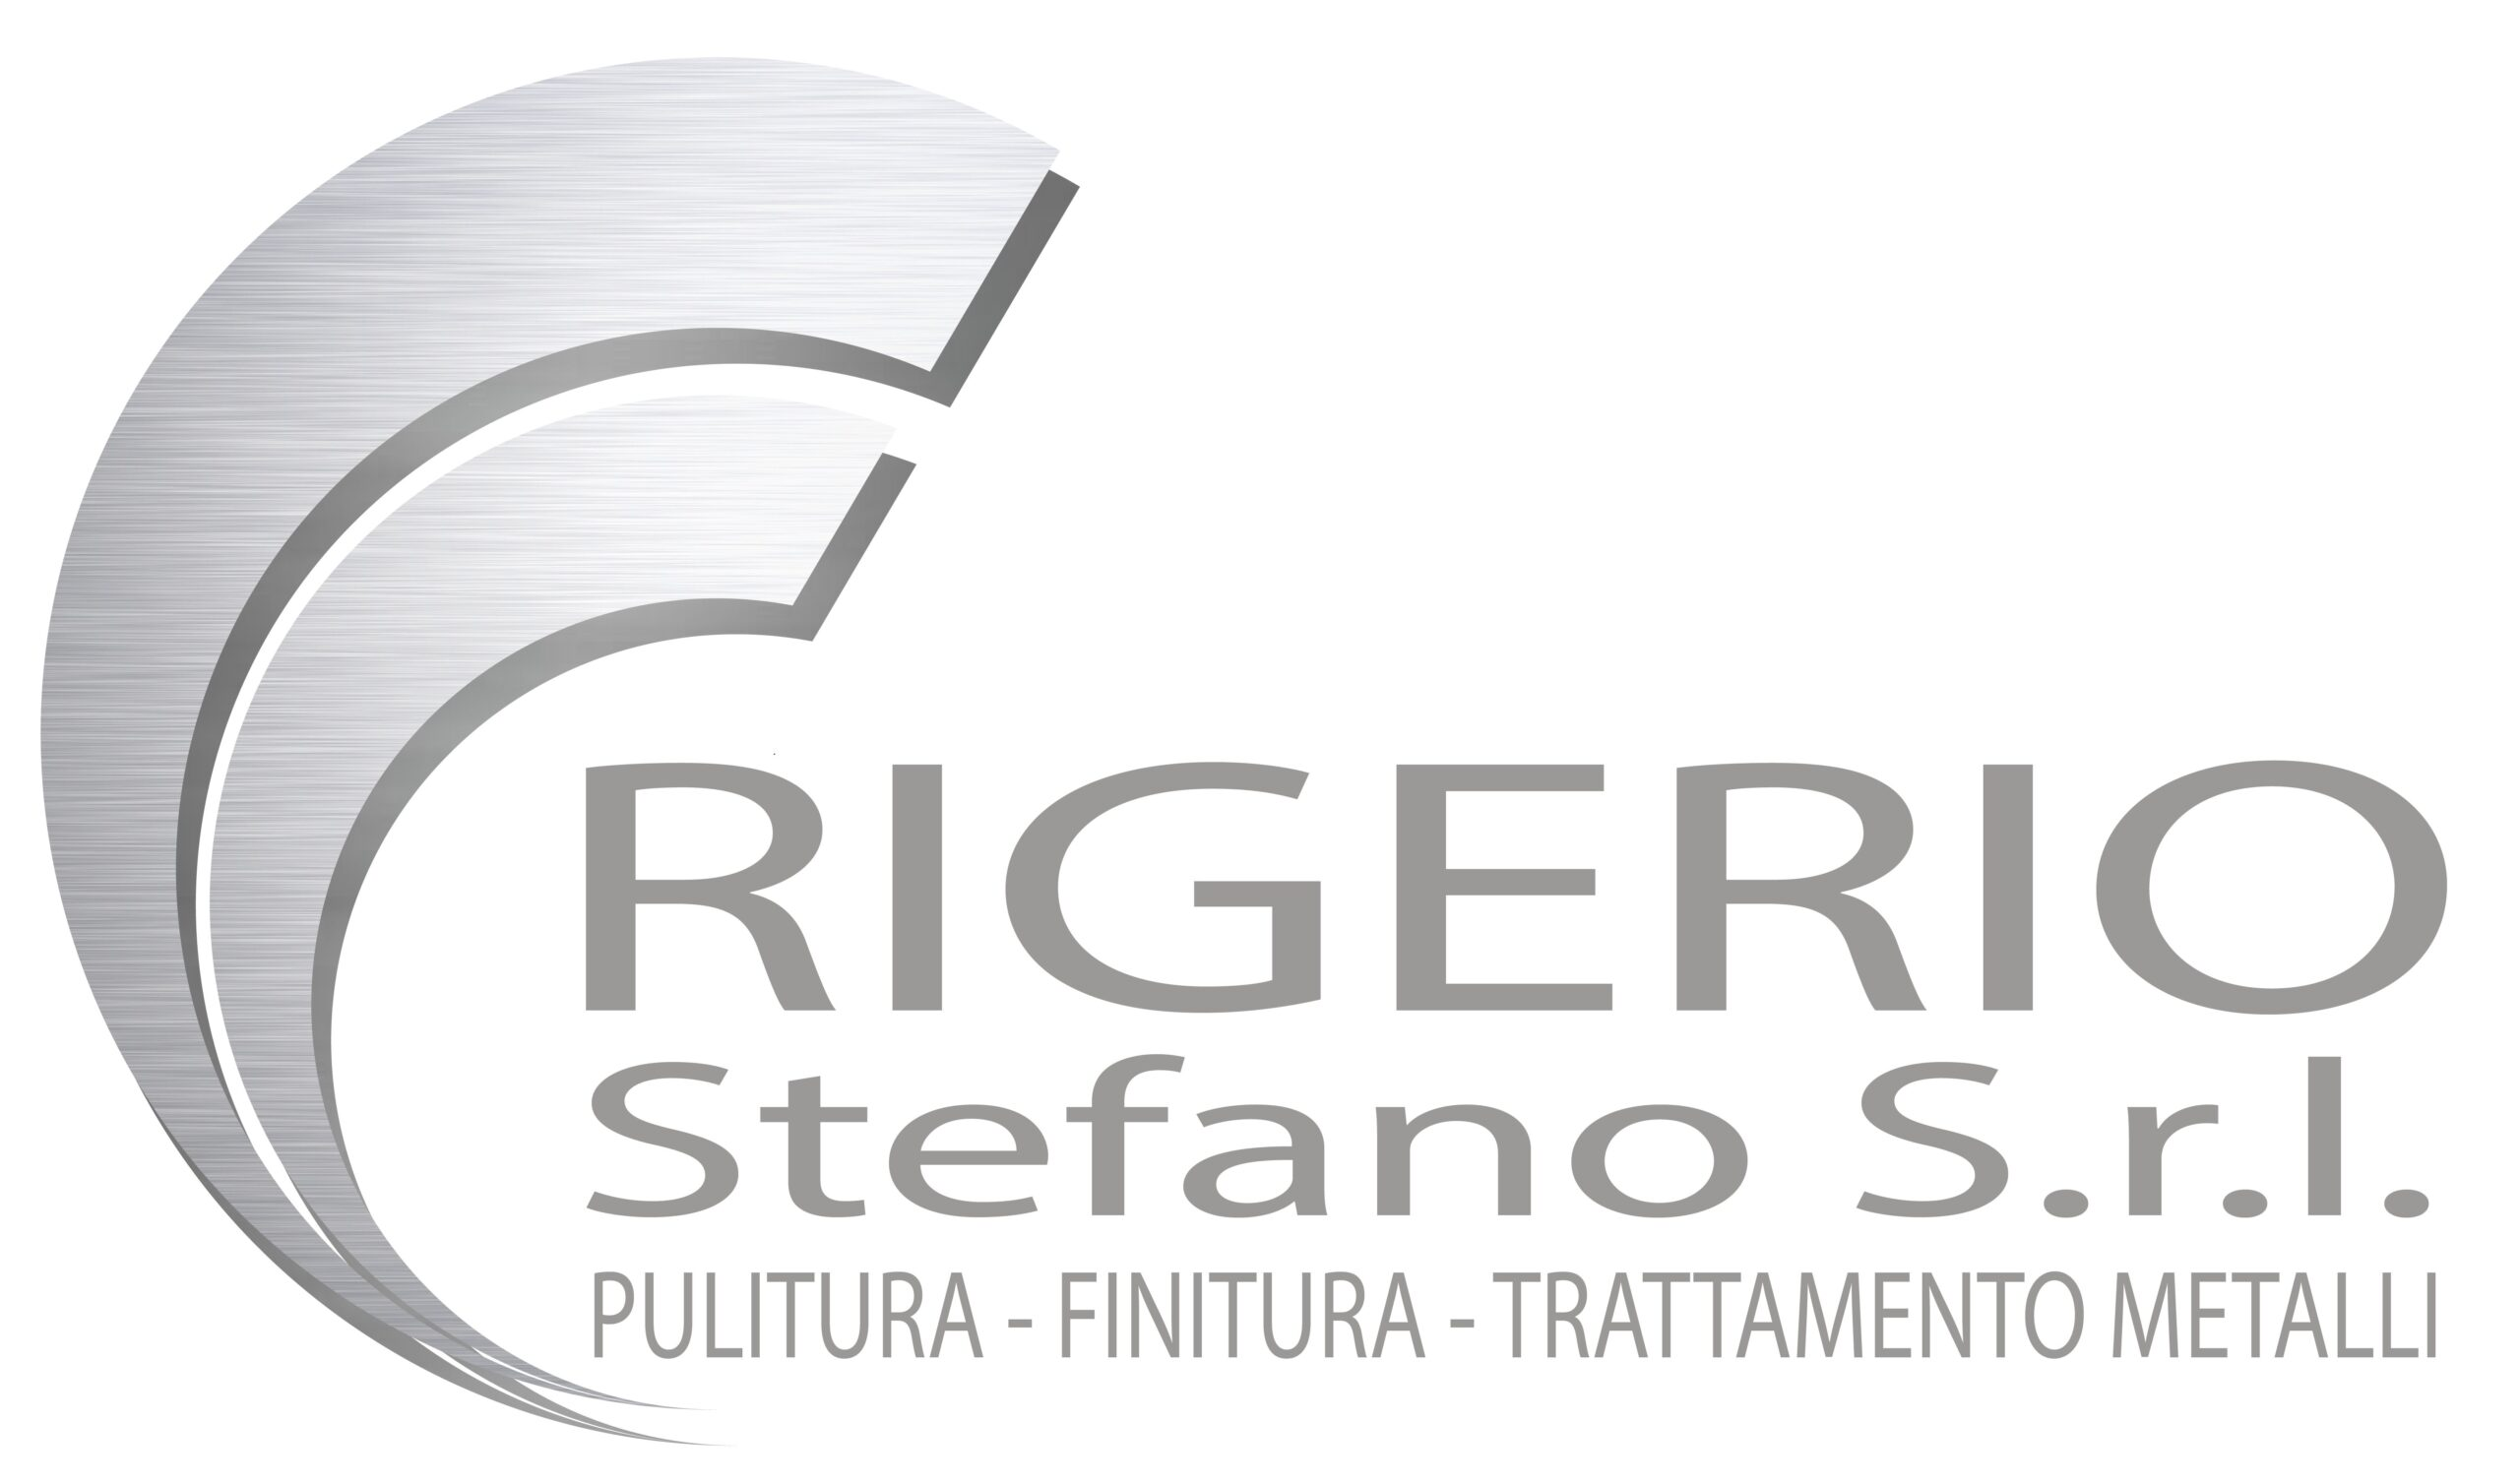 "Gestione sito web e social media management Dal 2009 , Logo Design, Web Design, gestione aggiornamento sito web e social media management, graphics & video editing, content wrtiting, assistenza hardware & software, networking administration di Frigerio Stefano Srl, Pulitura - Finitura - Trattamneto Metalli www.puliturametalli.com www.pigikappa.com PiGiKappa.com Your Digital Partner ""We Share Everything"" #share #pgk #pigikappa #pigikappa.com #webmaintenance #socialmedia #management #social #puliturametalli #frigerio #e-commerce #logo #logodesign Music: http://www.bensound.com Graphics & Music & Video Editing: PiGiKappa.com Or.Music: Bensound CC0 Or.Video: Pixabay CC0"